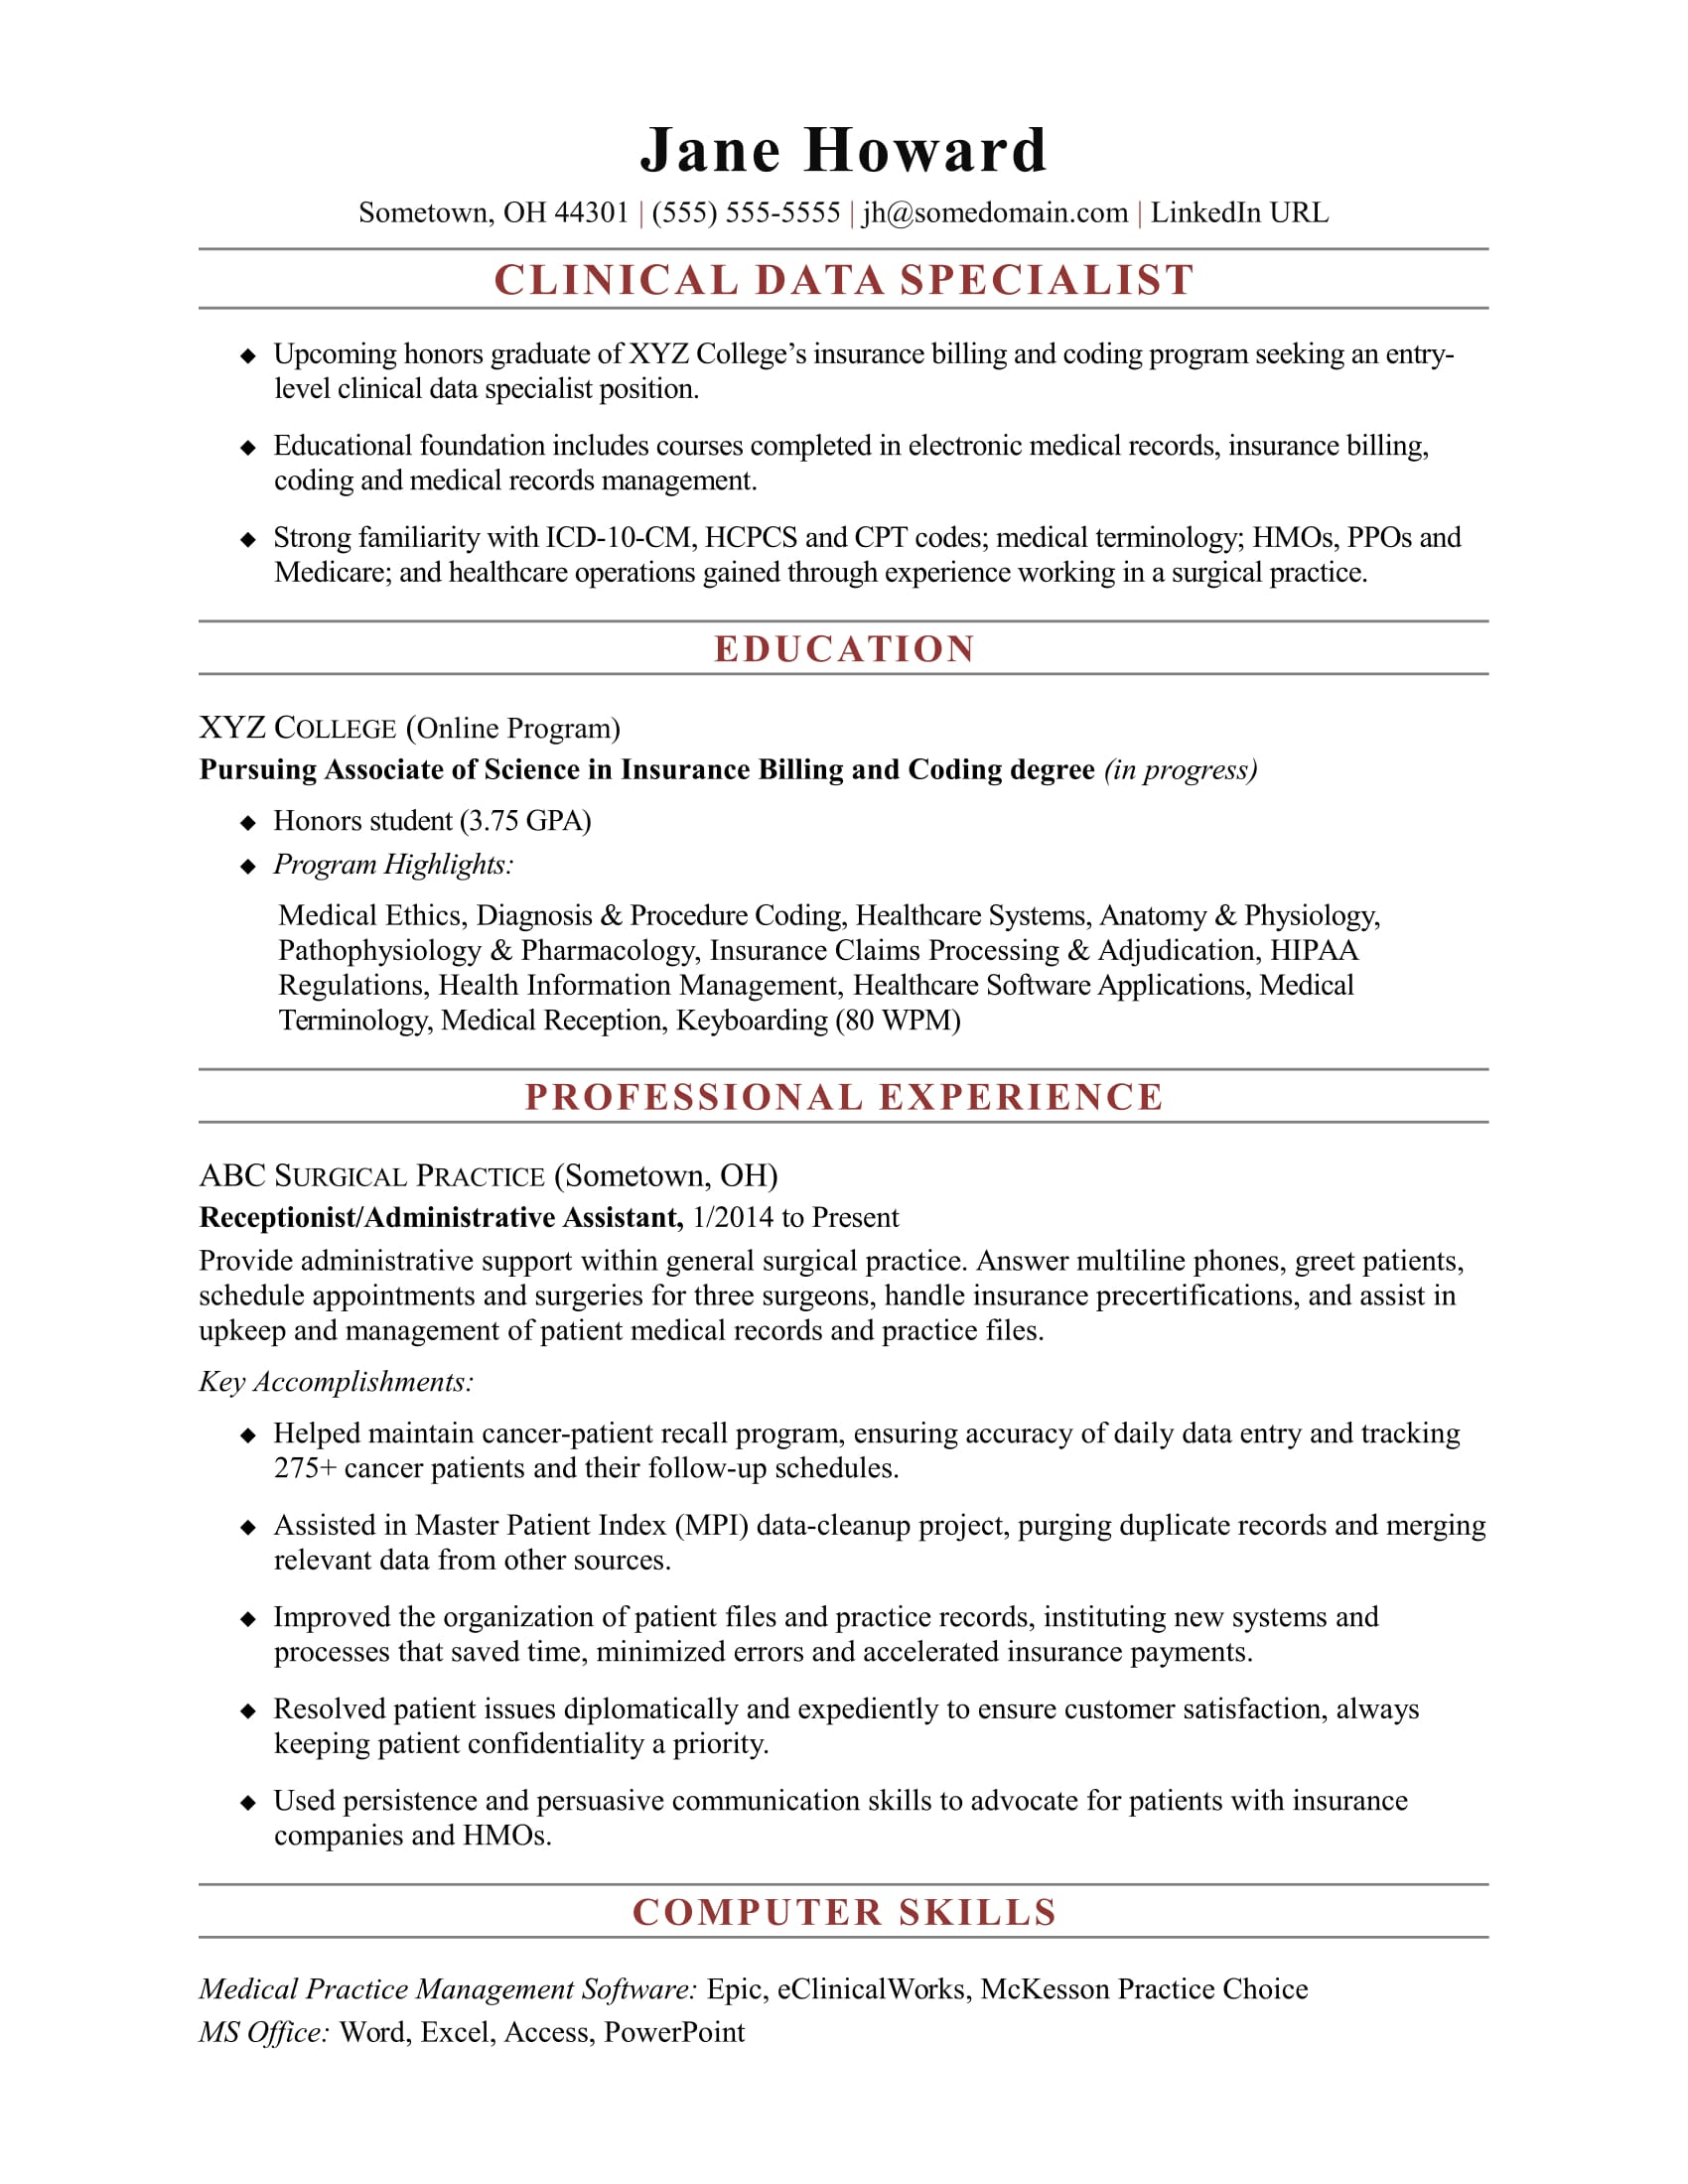 Entry-Level Clinical Data Specialist Resume Sample | Monster.com